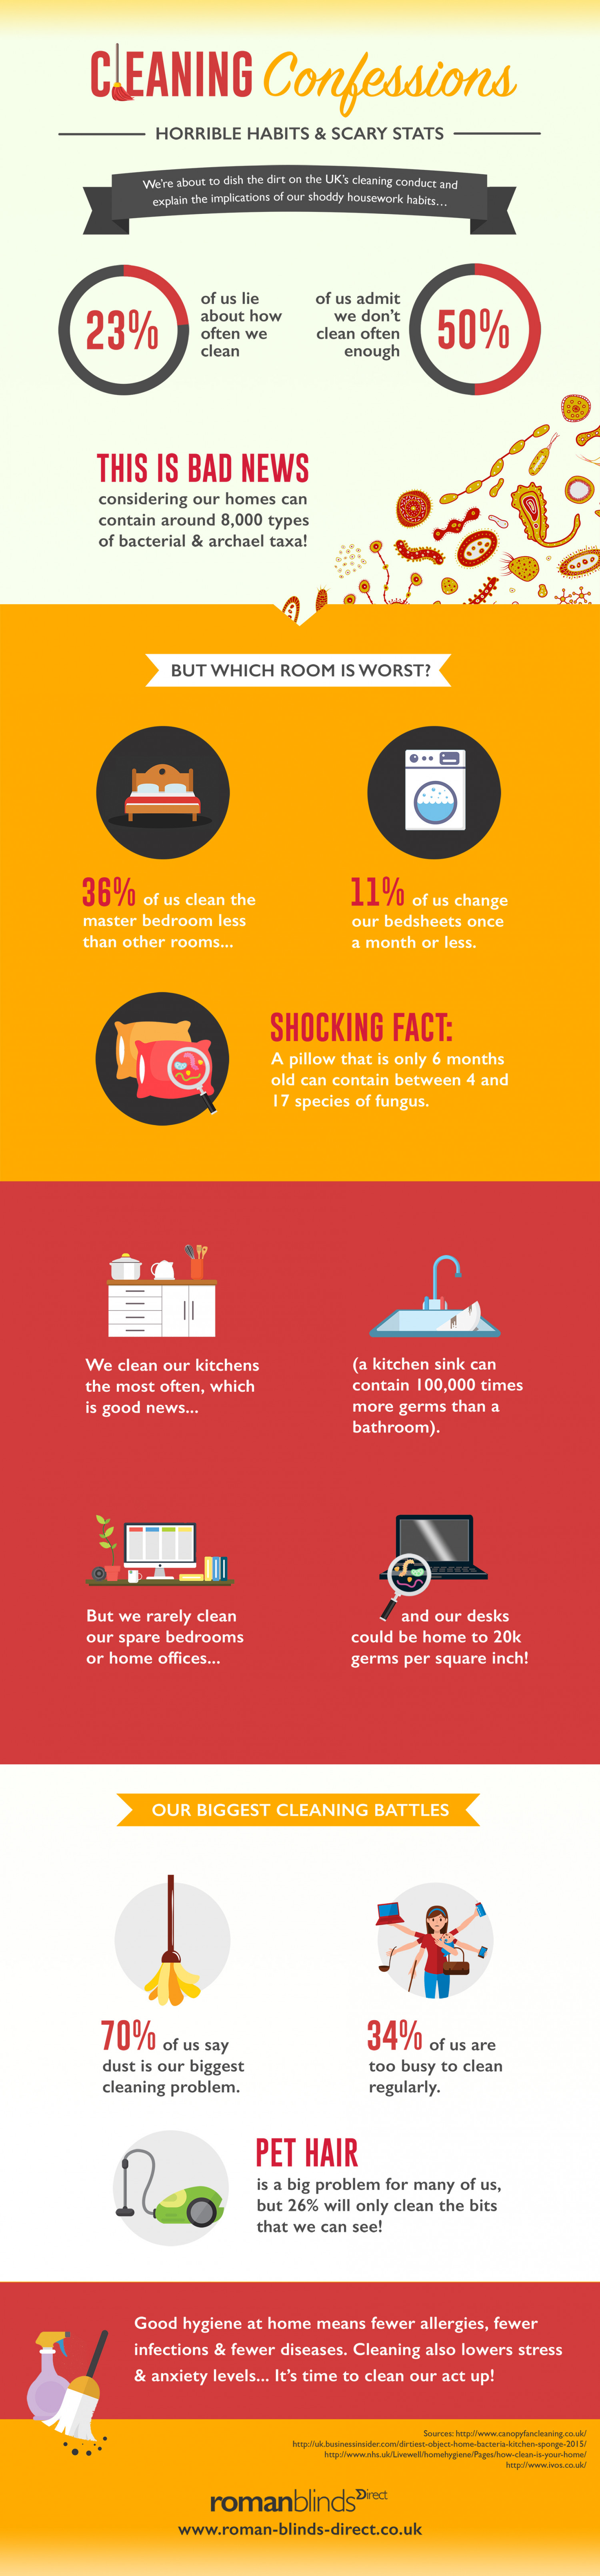 Cleaning Confessions: How Clean Is Your Home? Infographic